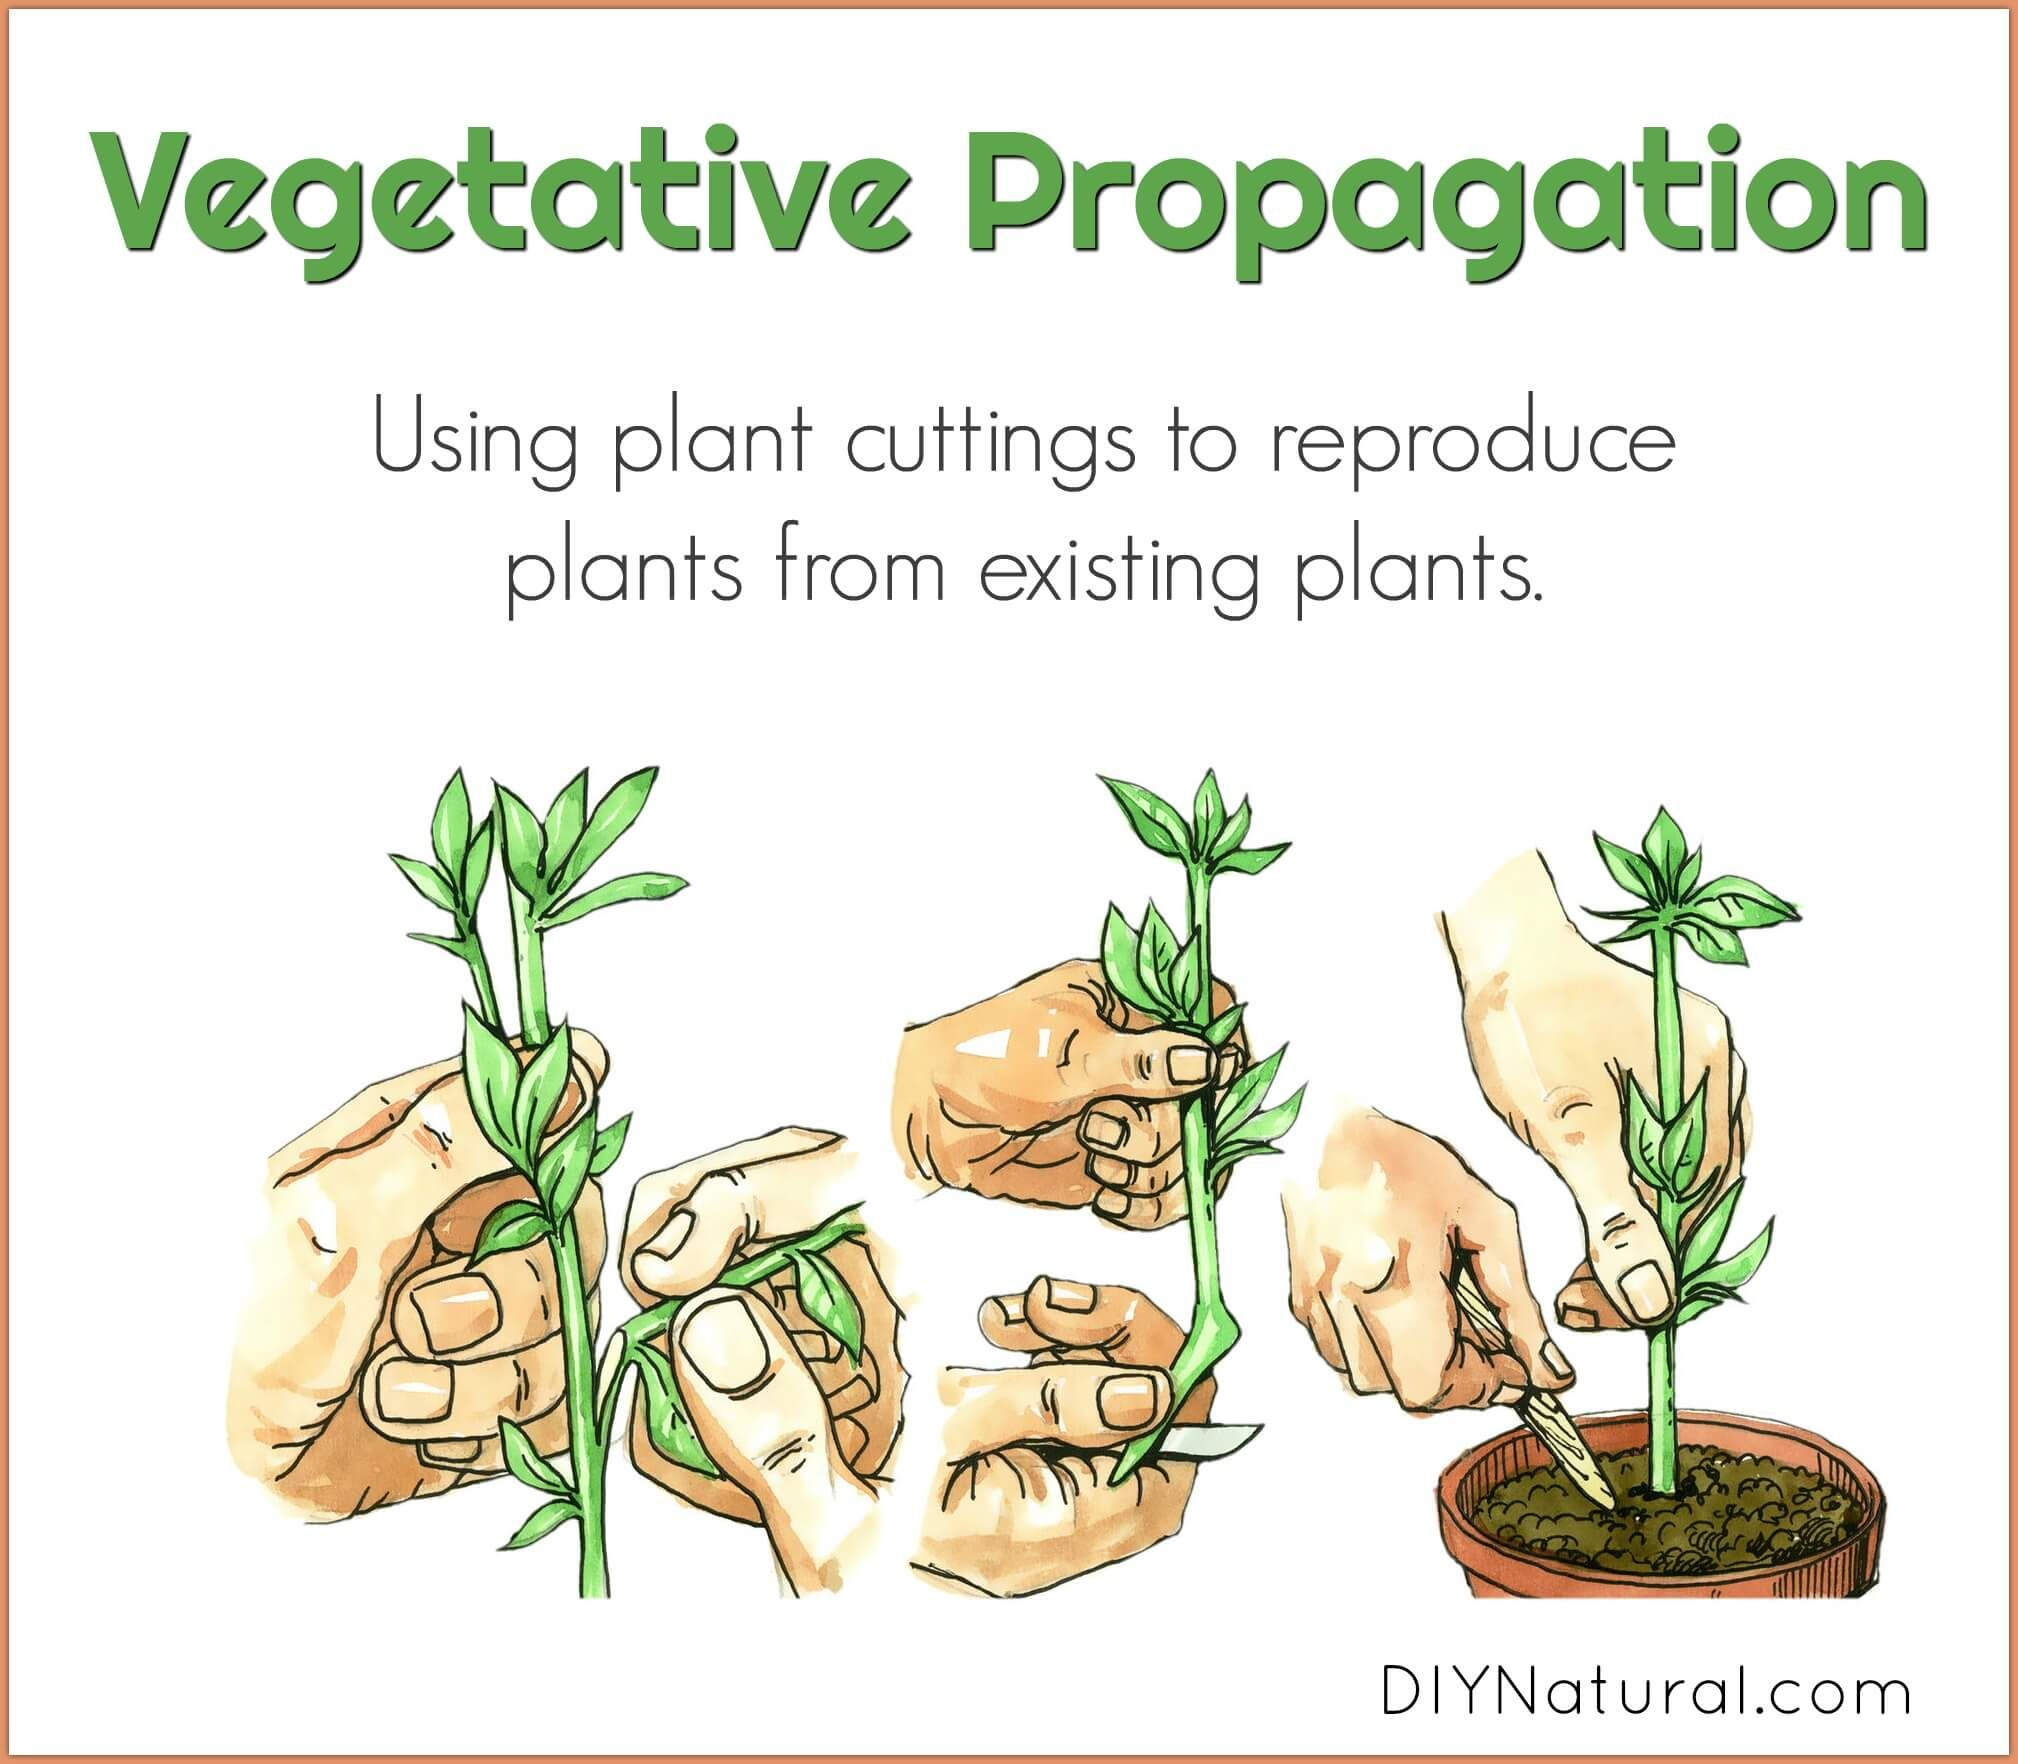 Vegetative Propagation Using Plant Cuttings To Reproduce